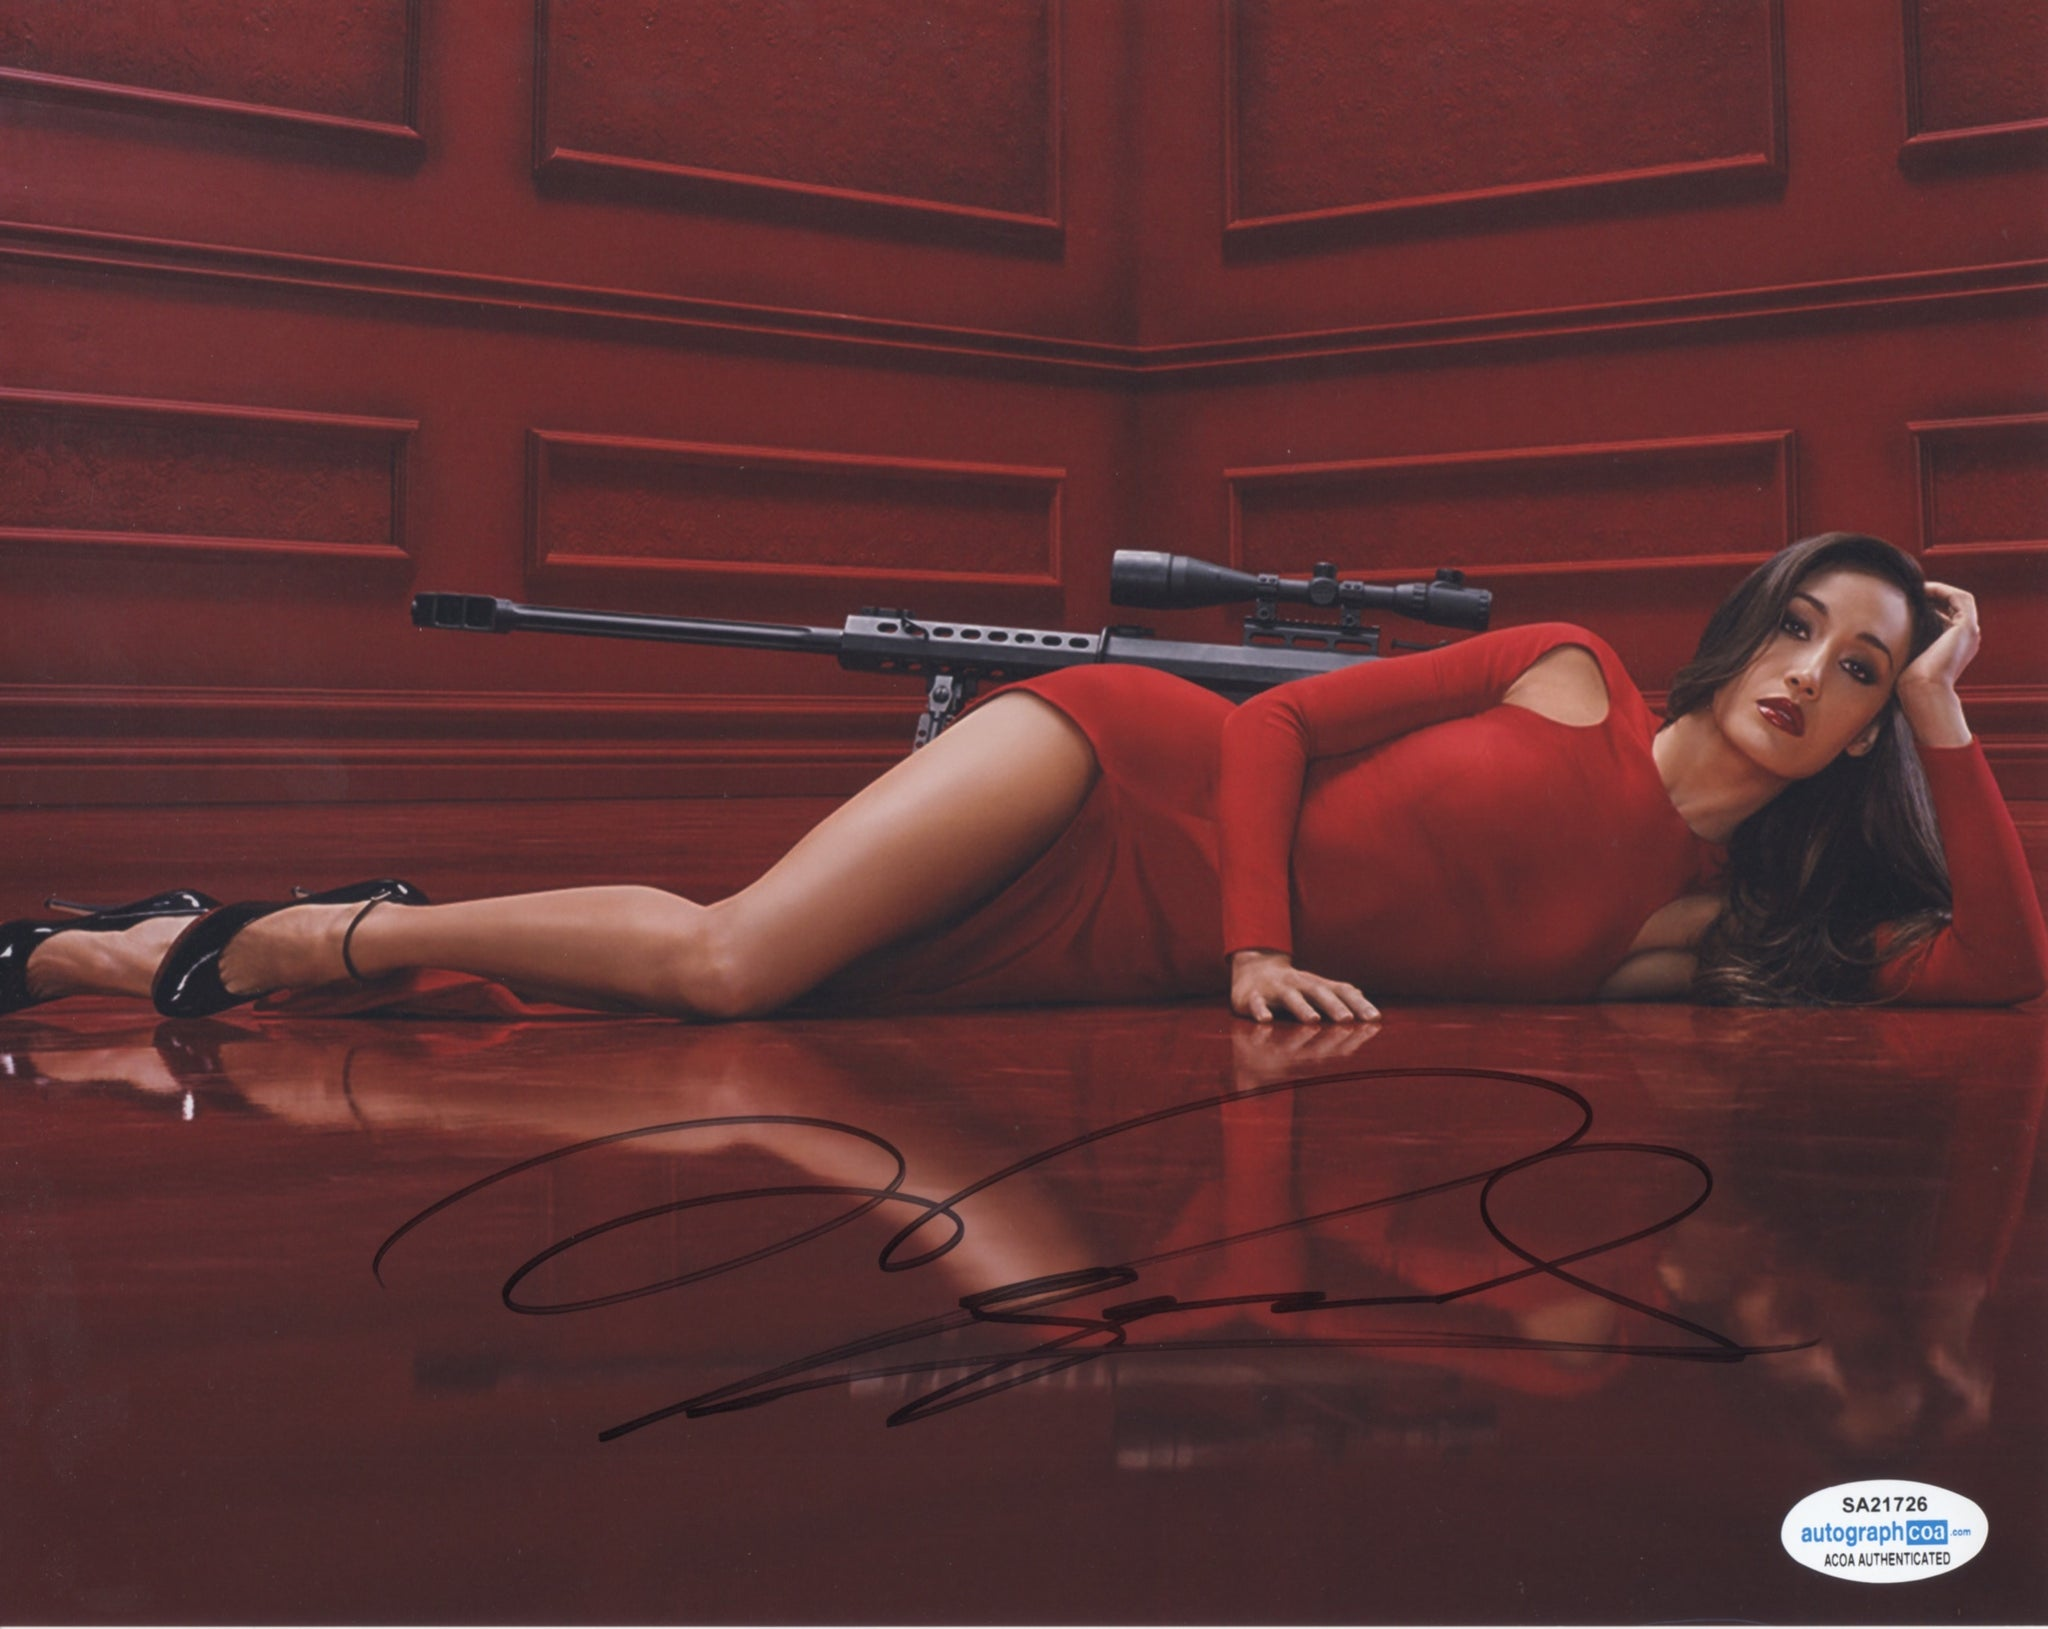 Maggie Q Nikita Sexy Signed Autograph 8x10 Photo ACOA - Outlaw Hobbies Authentic Autographs